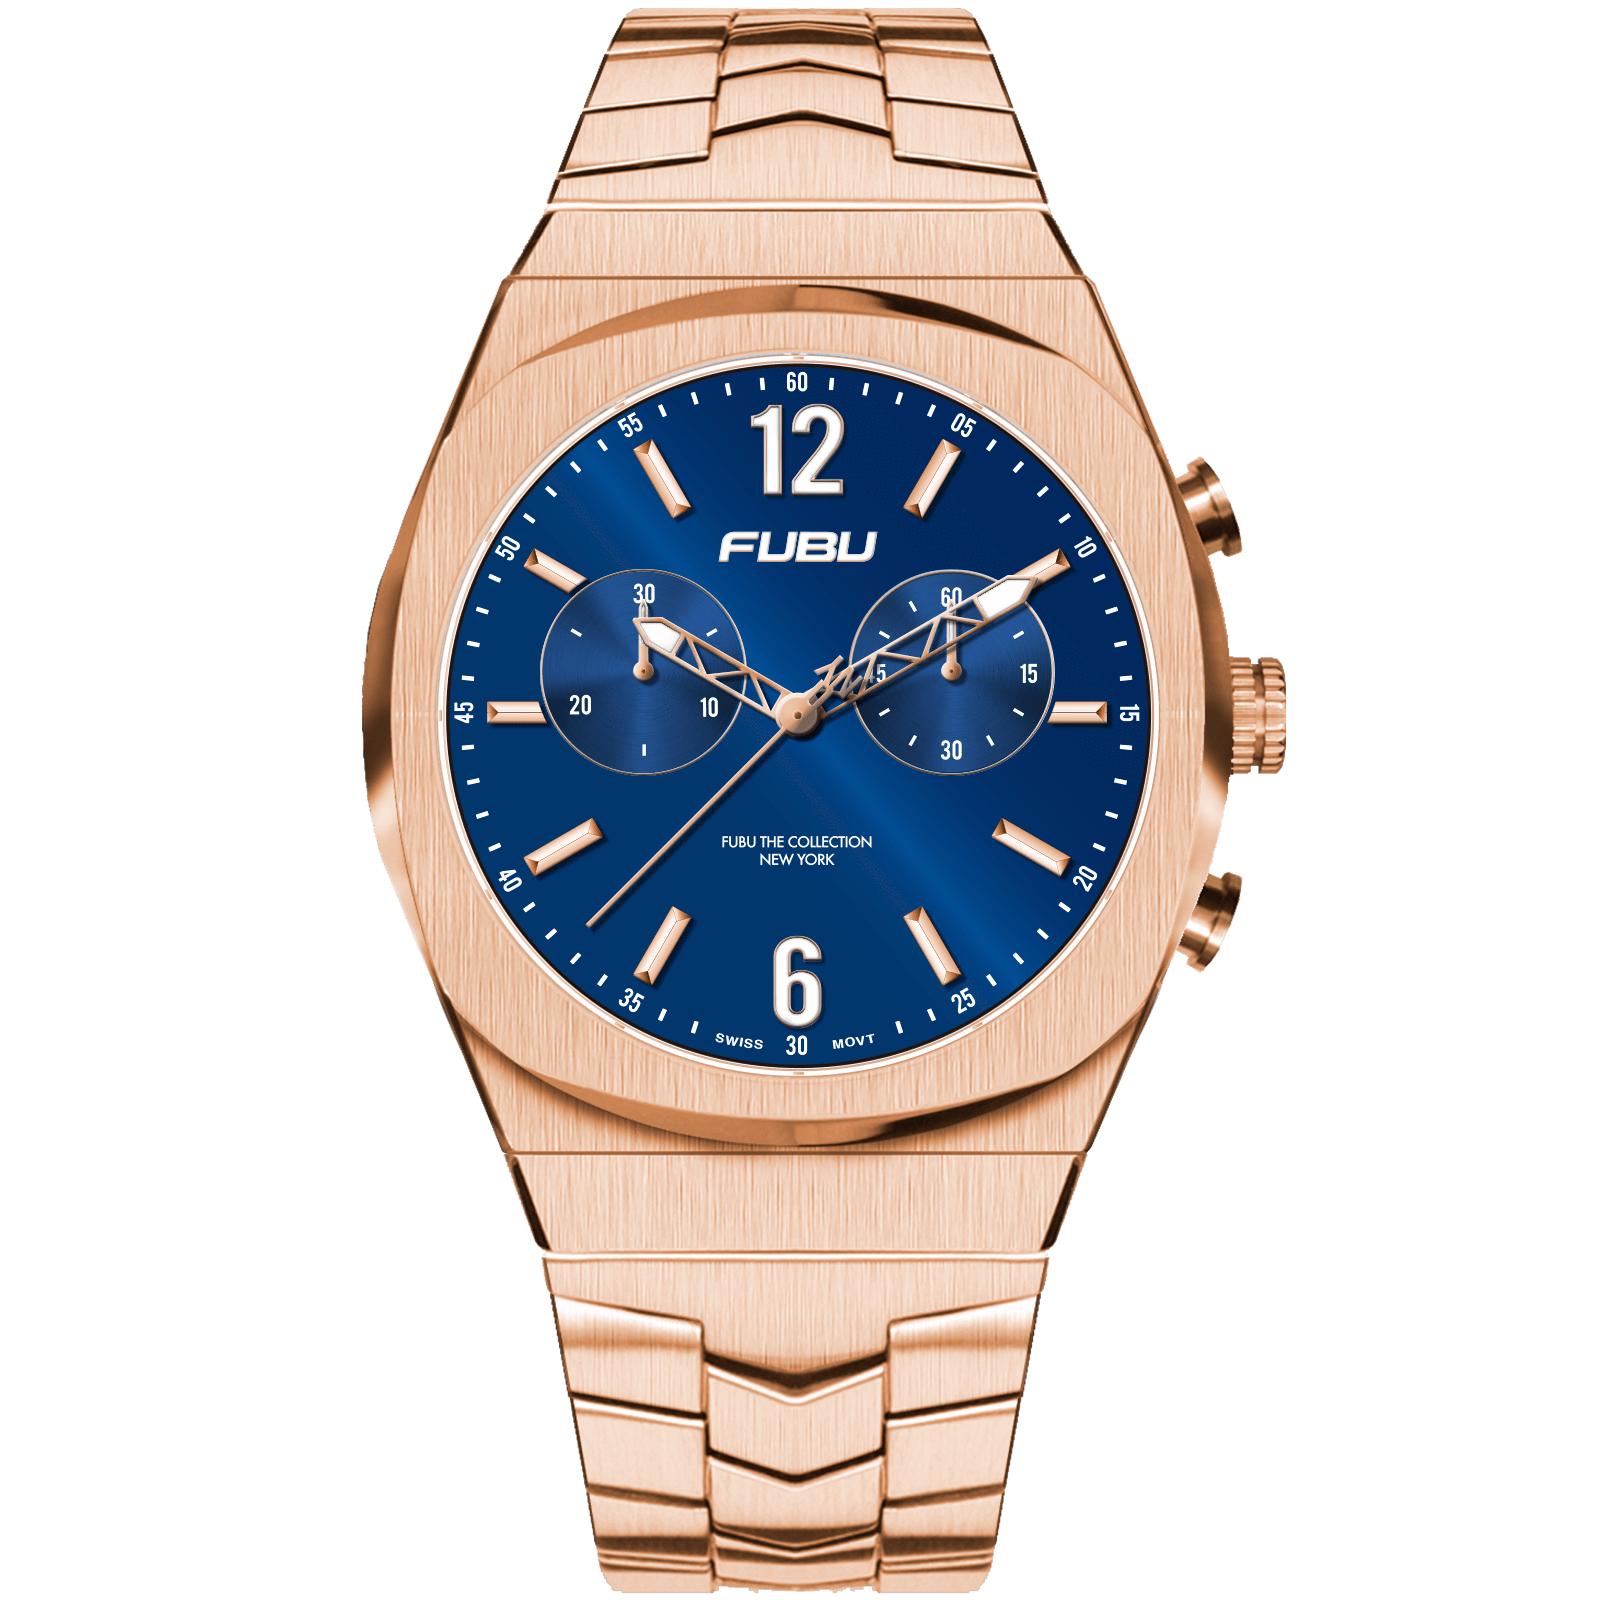 FUBU Watch Empire State Chrono